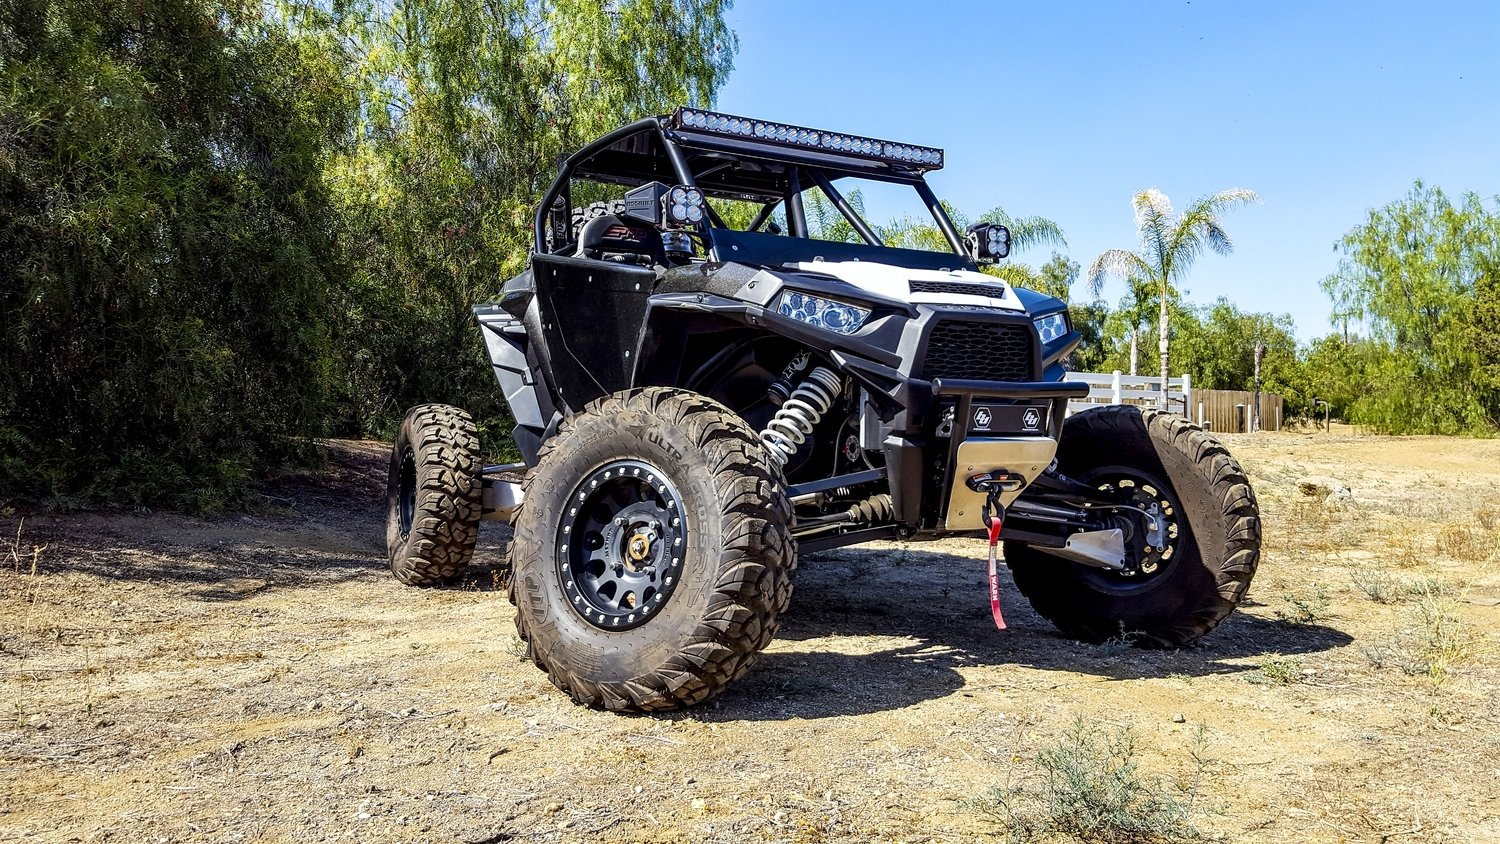 Polaris RZR XP1000 2-Seat Stock Point Roll Cage